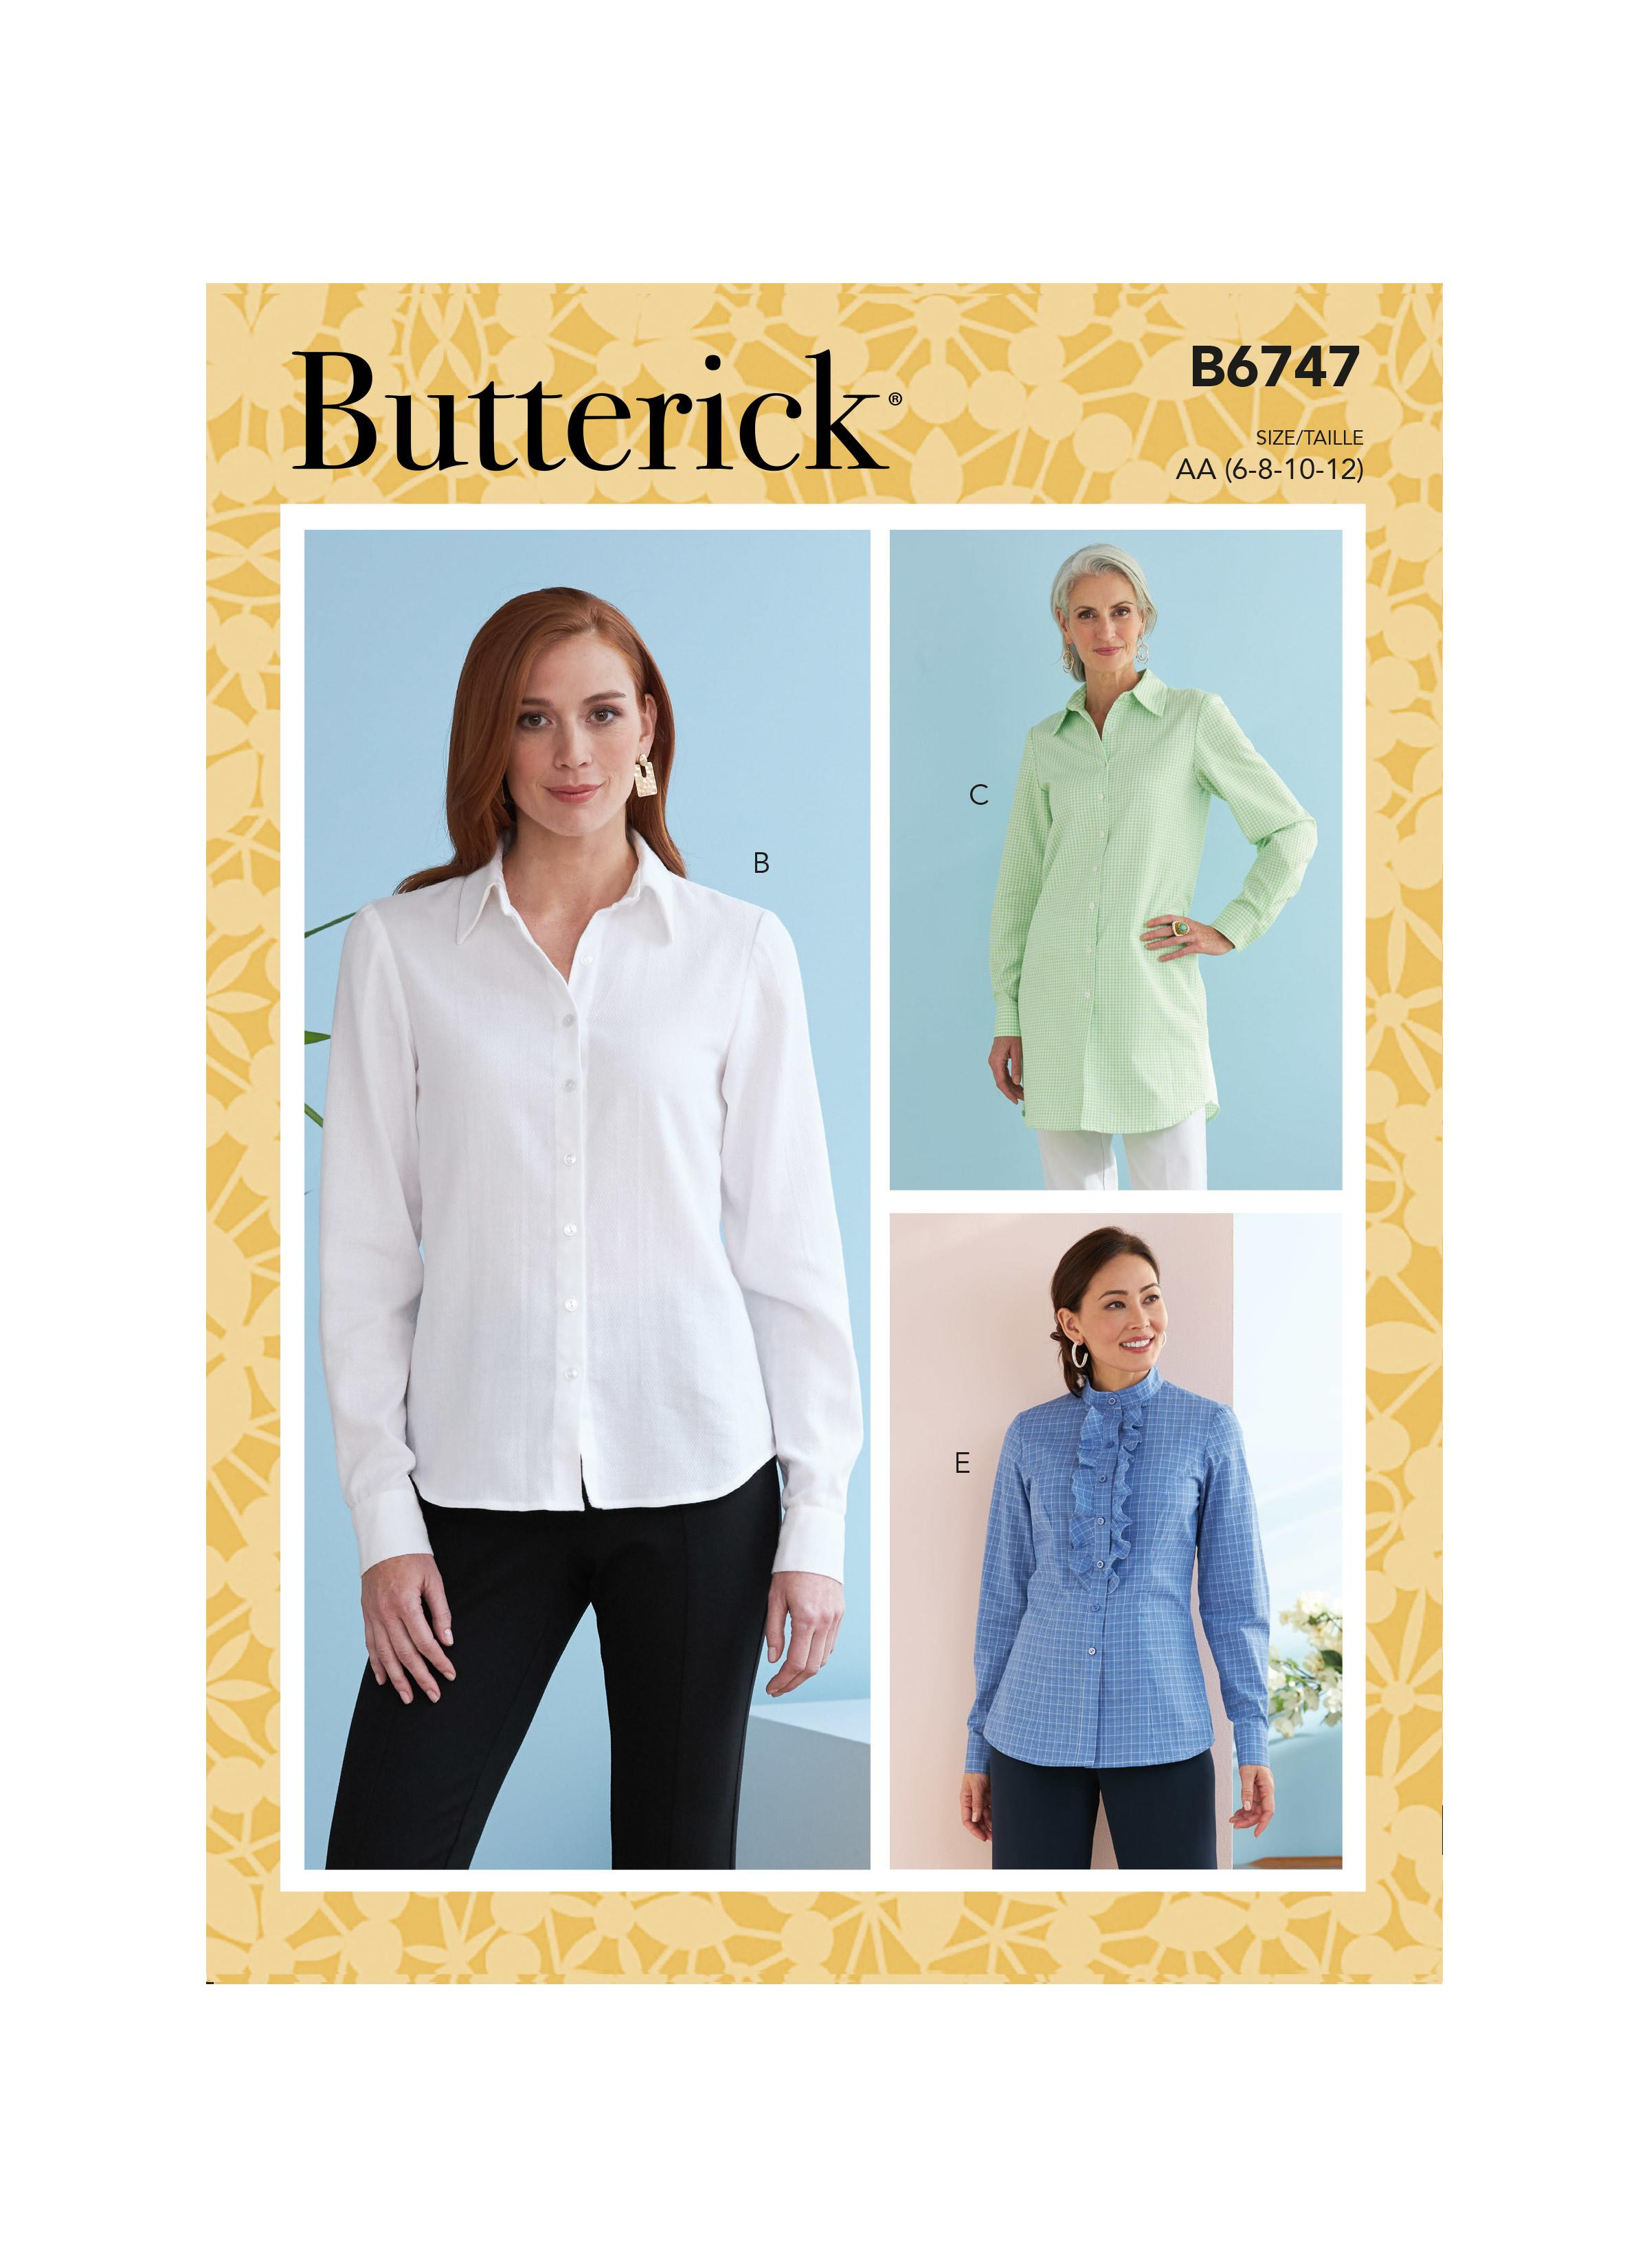 Butterick B6747 Misses' Button-Down Collared Shirts